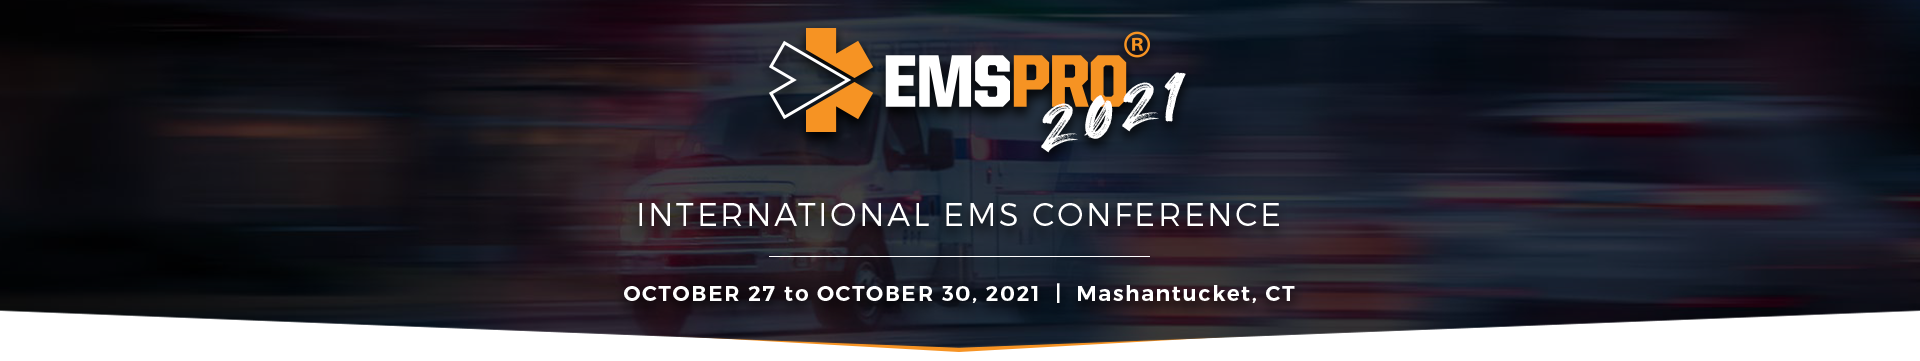 EMS PRO Expo 2021